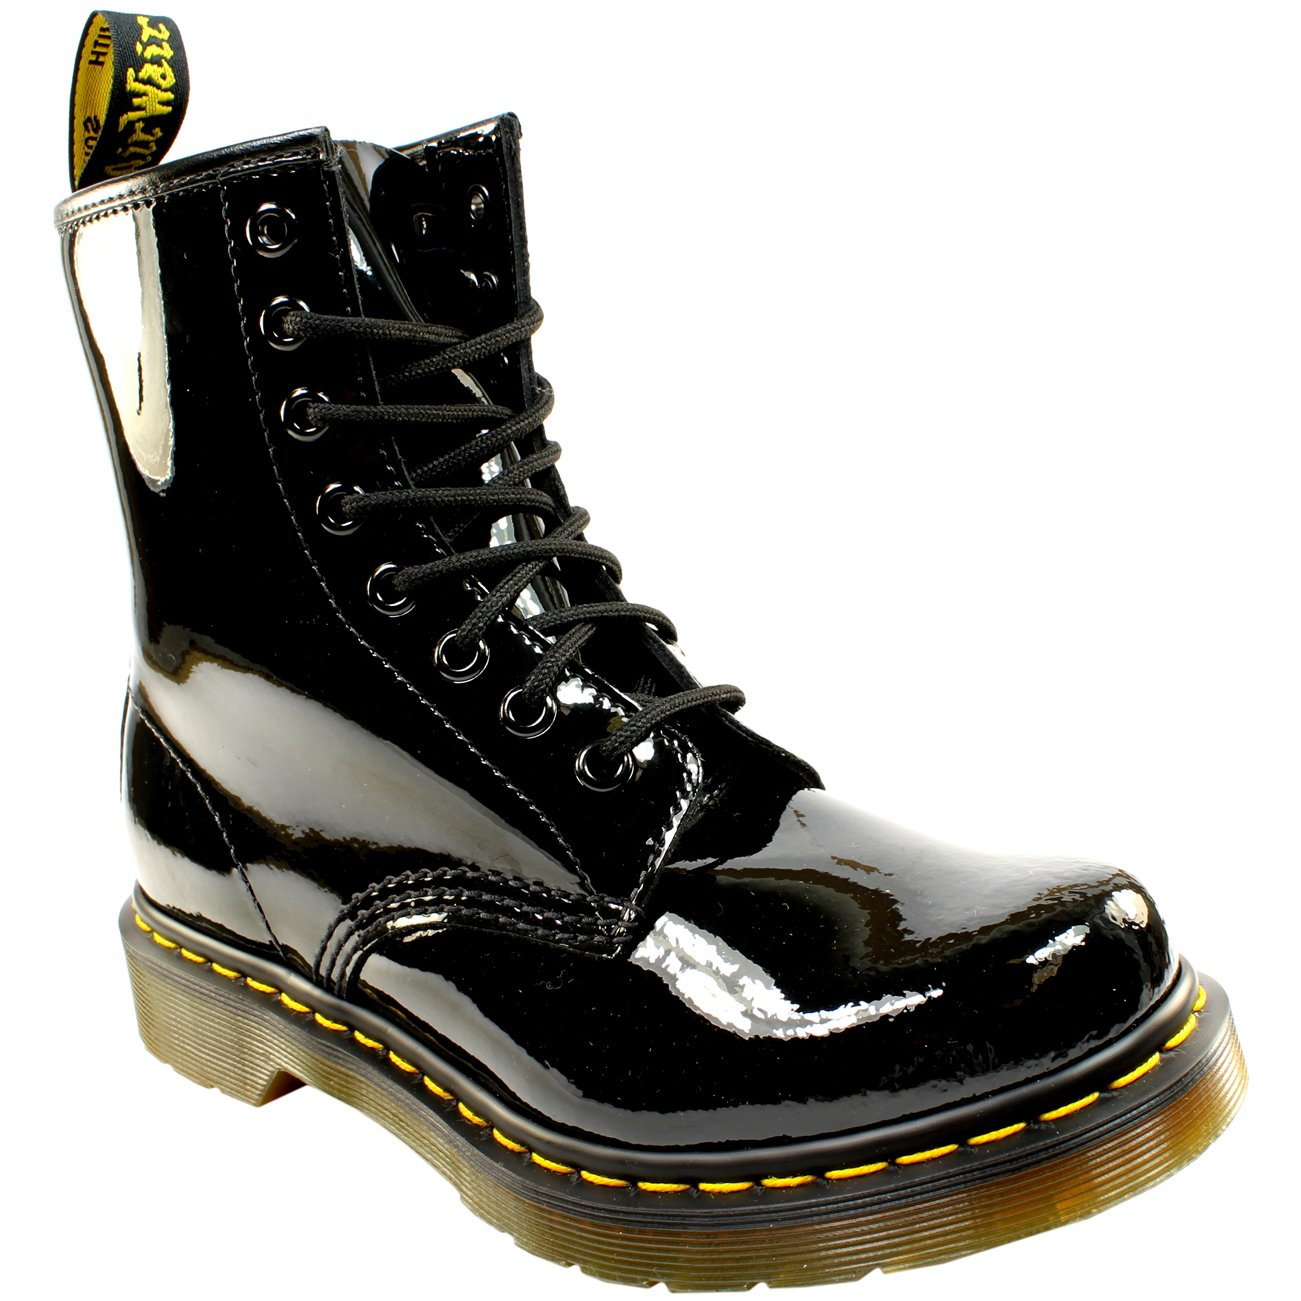 Womens Dr Martens 1460 W 8 Eyelet Patent Lamper Army Combat Lace Up Boot B00KN2EAQU 10 B(M) US|Black